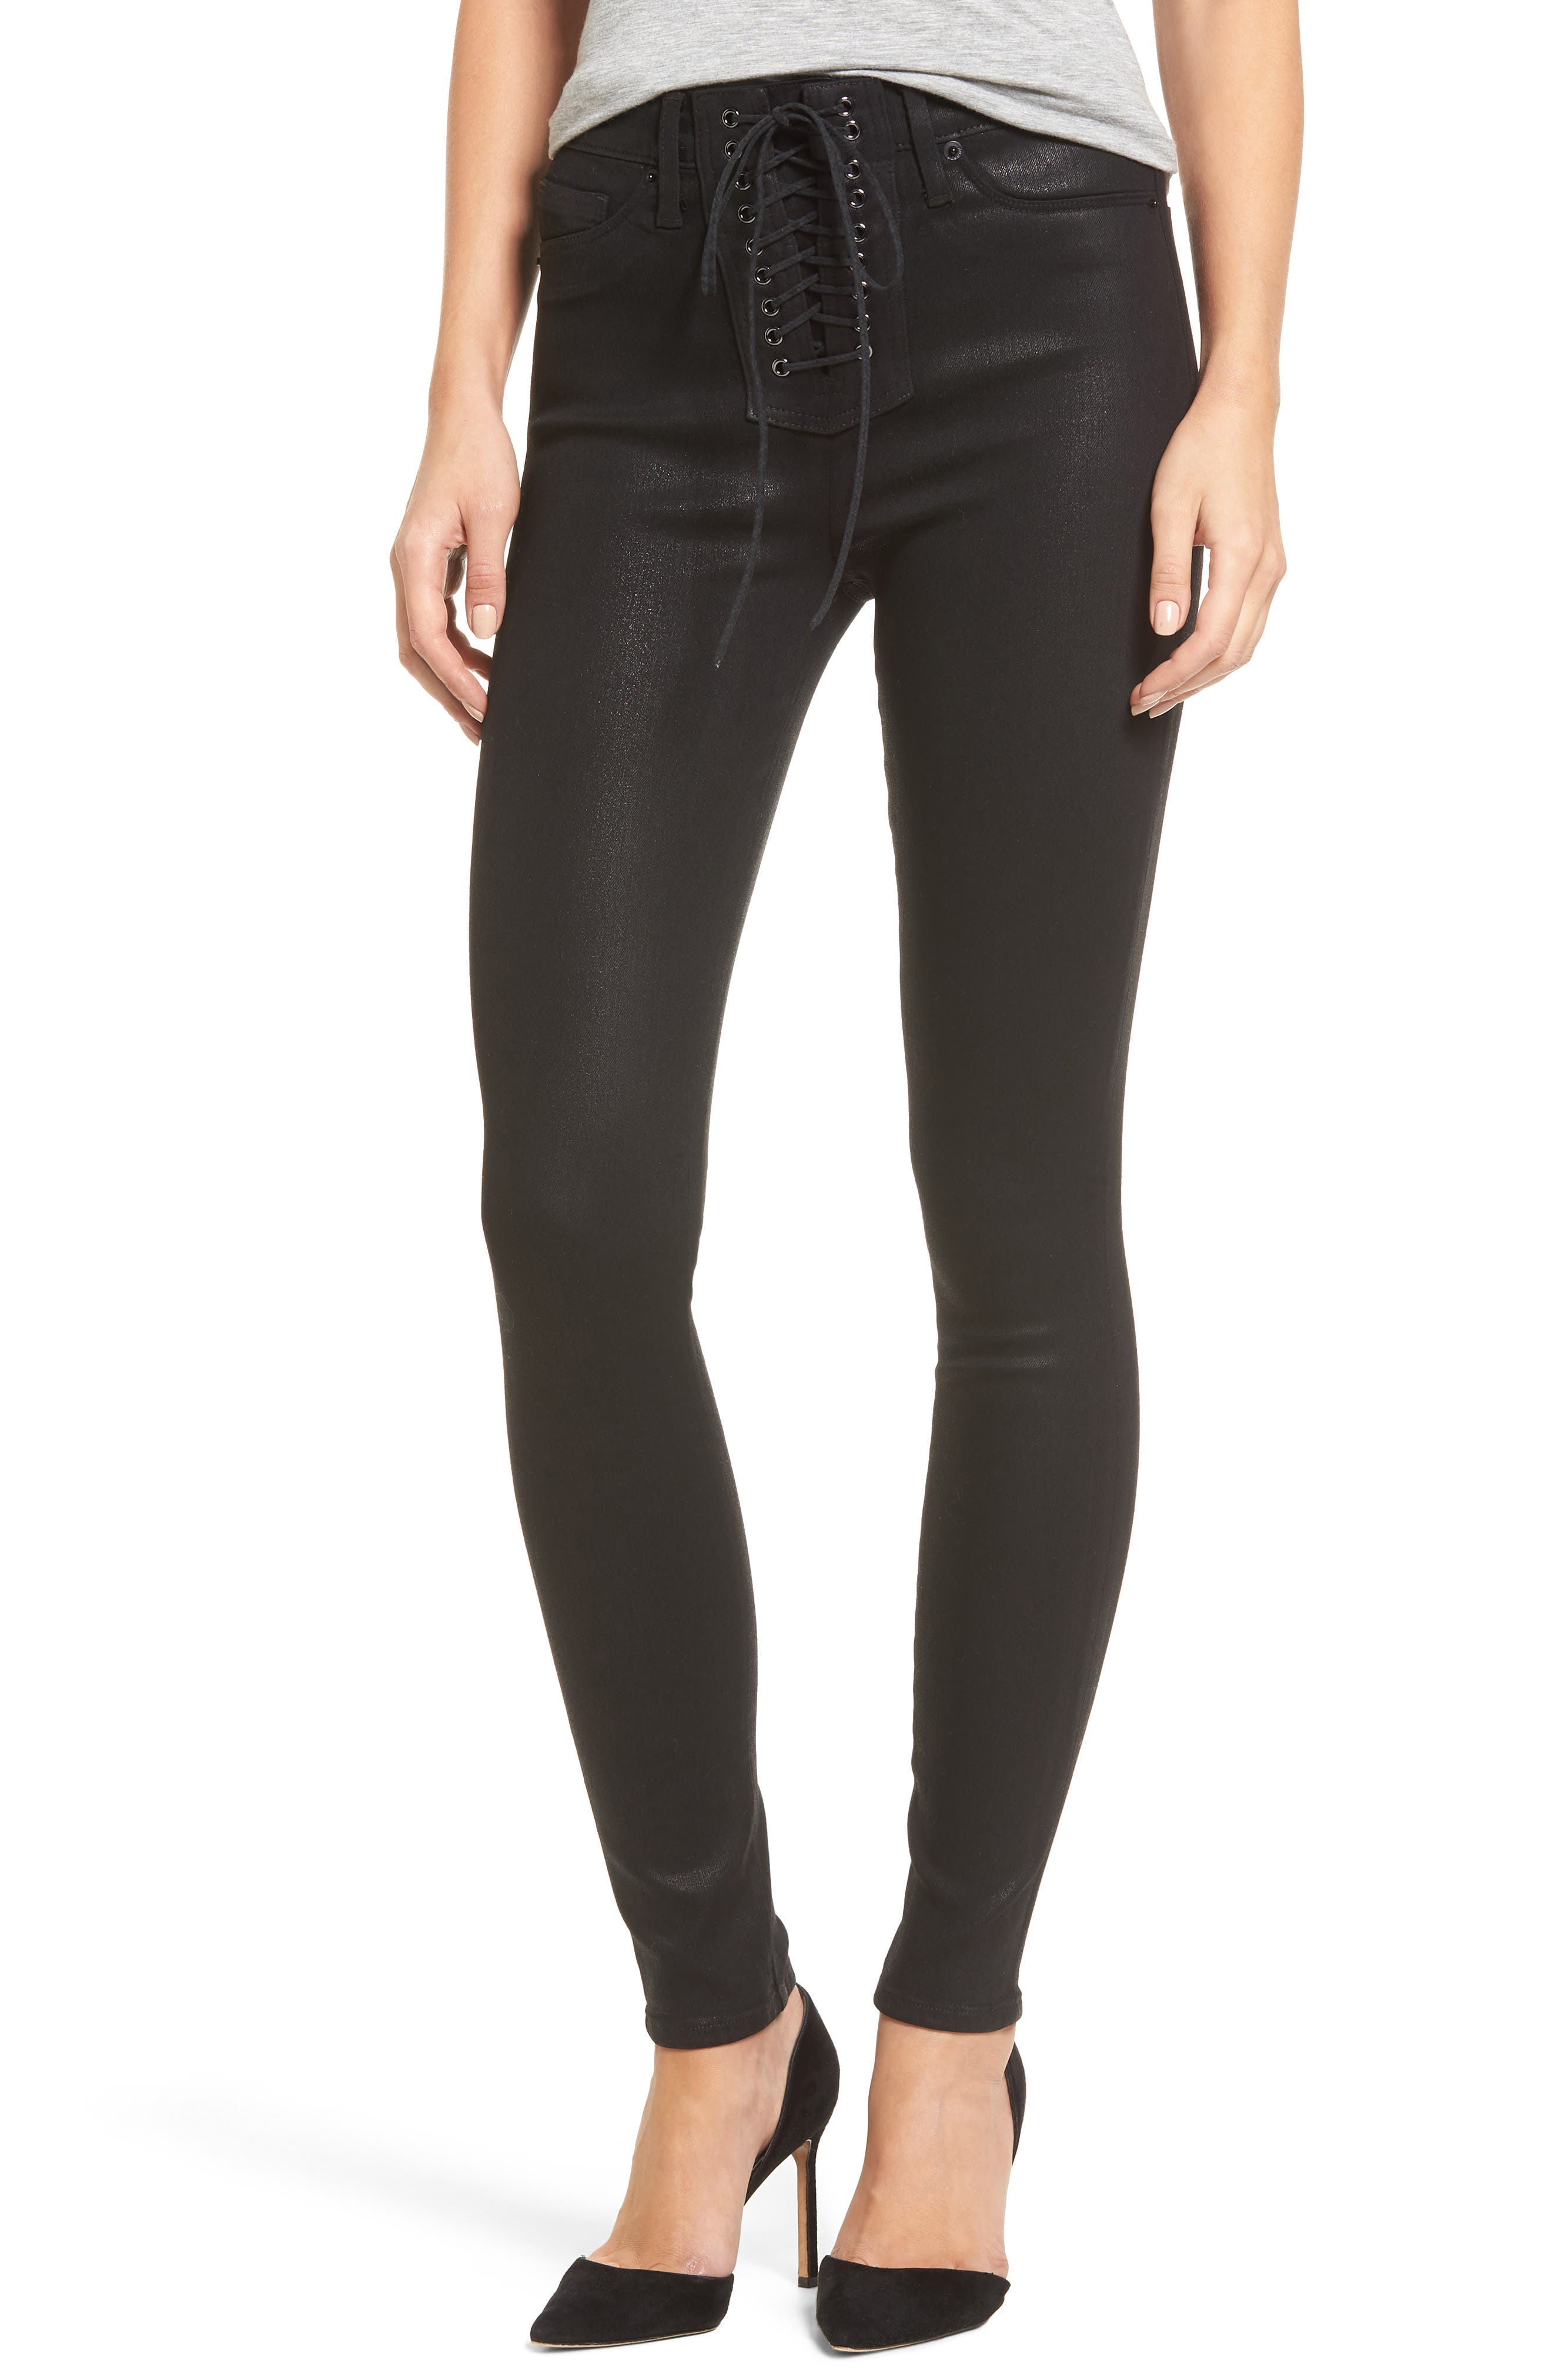 Bullocks High Waist Lace-Up Skinny Jeans,                         Main,                         color, Black Coated